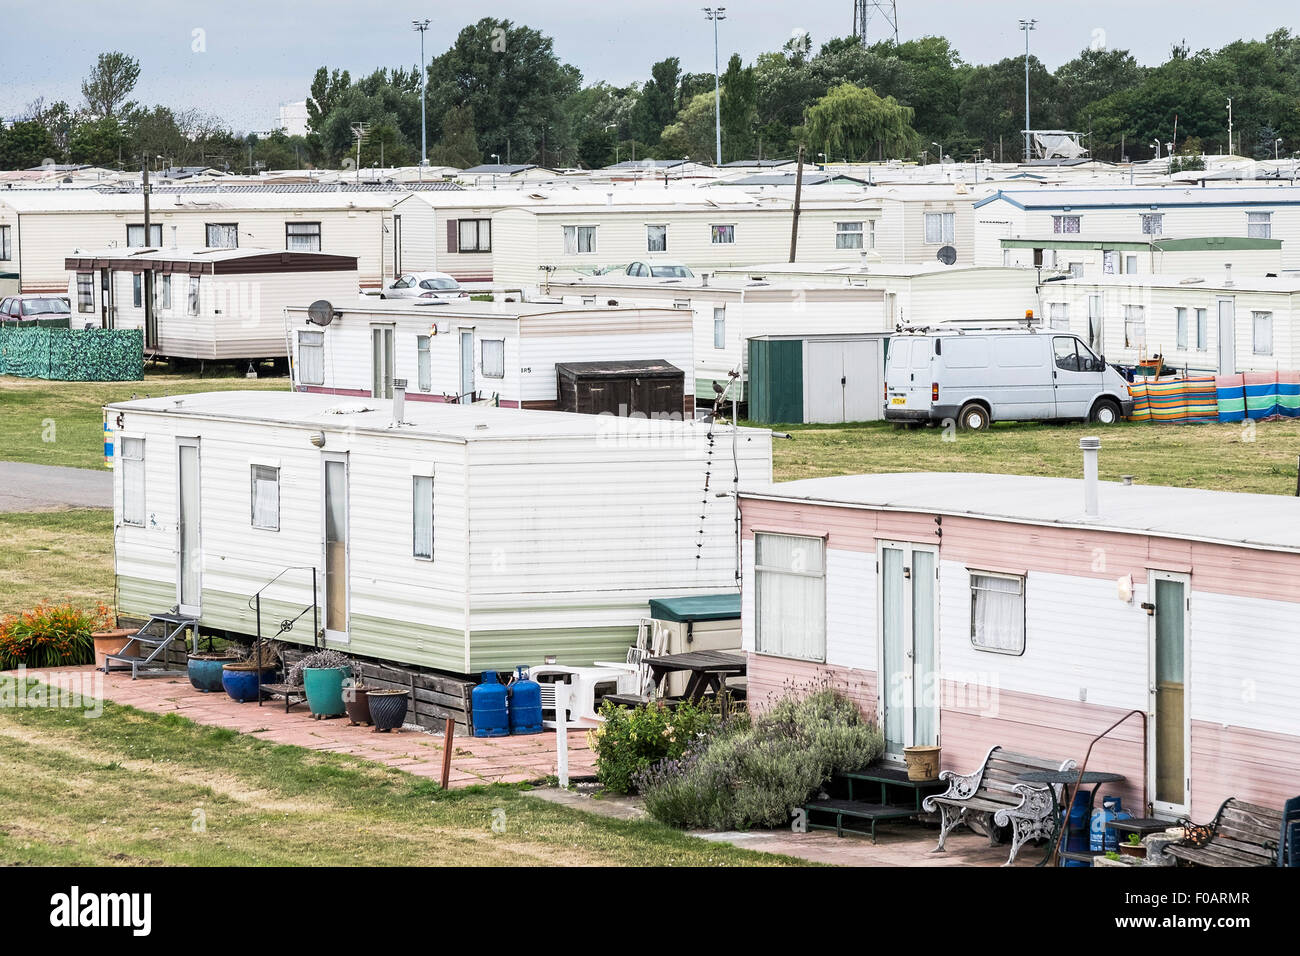 Canvey Island - Thorney Bay Village. A residential caravan park on Canvey Island, Essex. Stock Photo